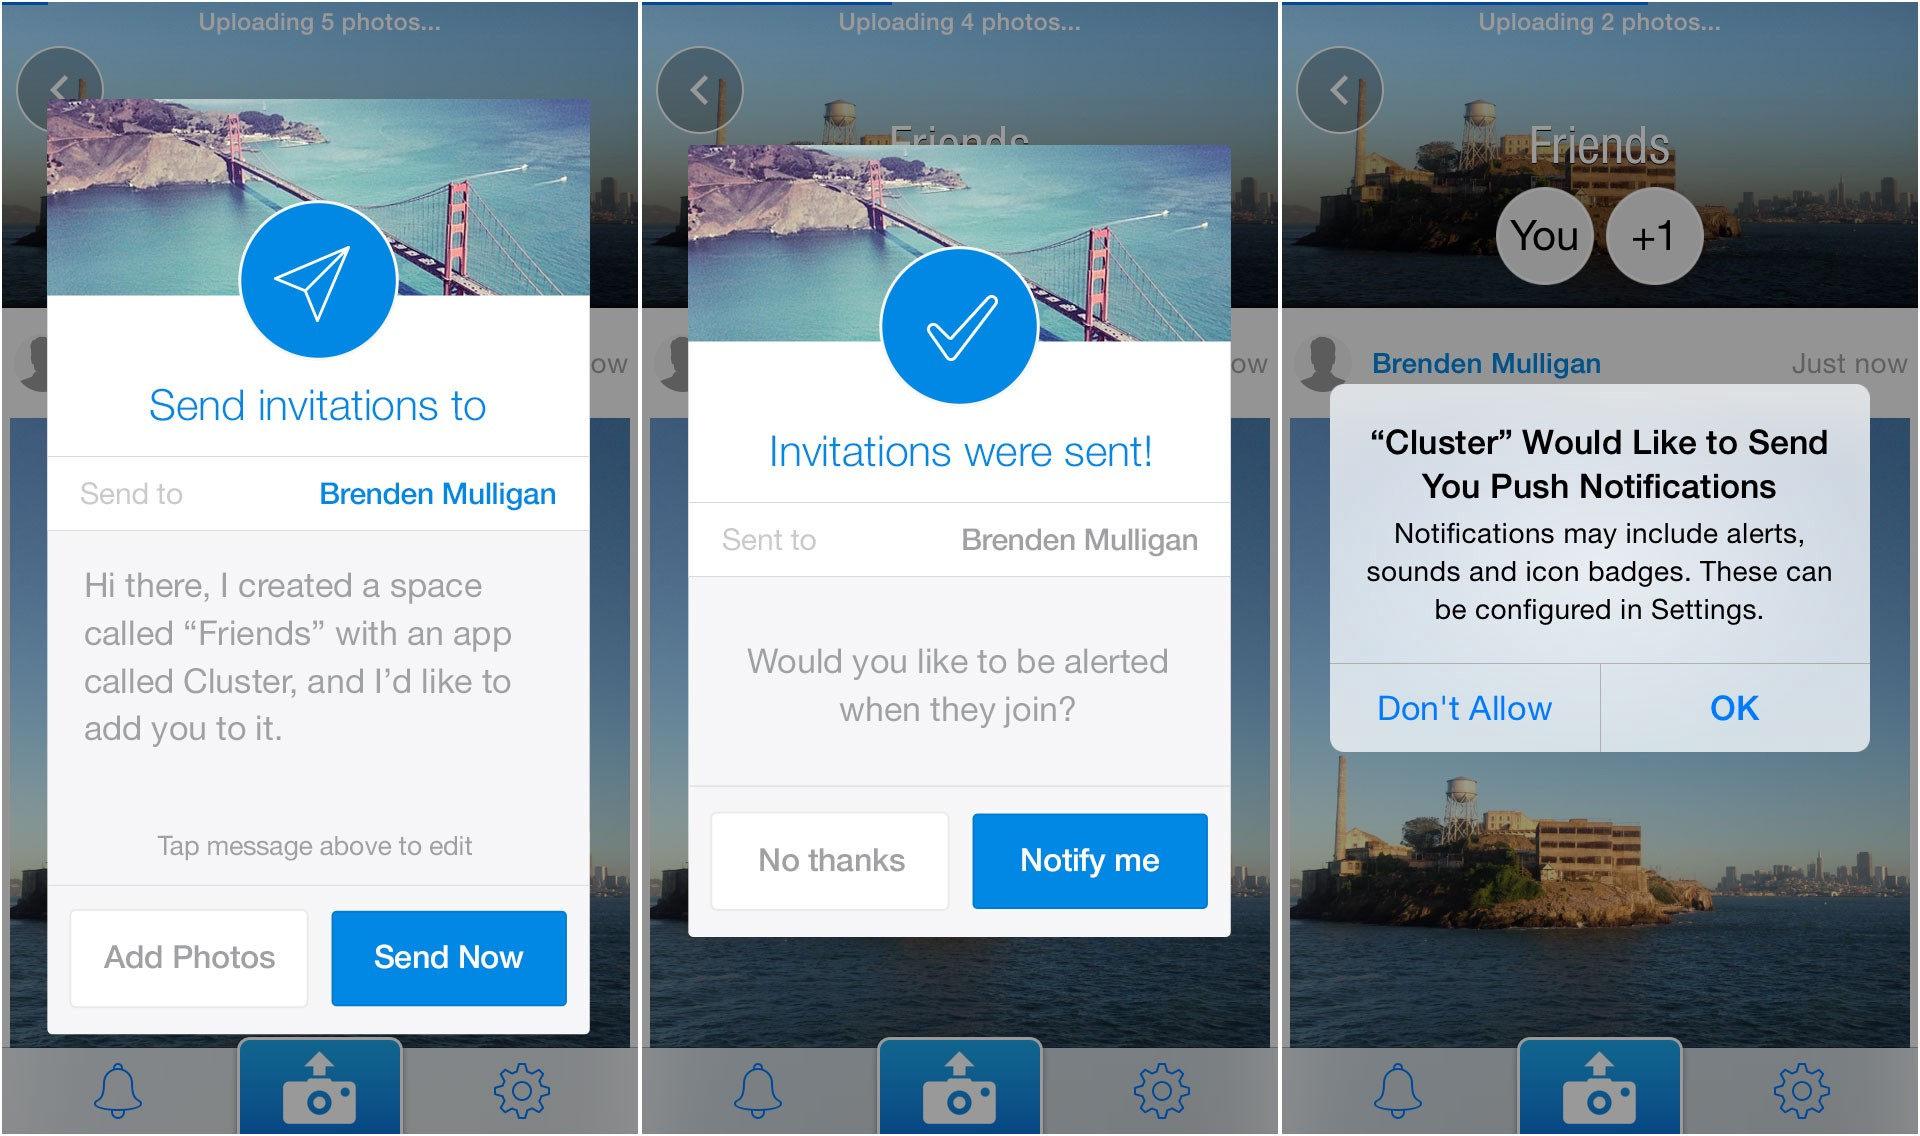 The Right Way to Ask Users for Mobile Permissions